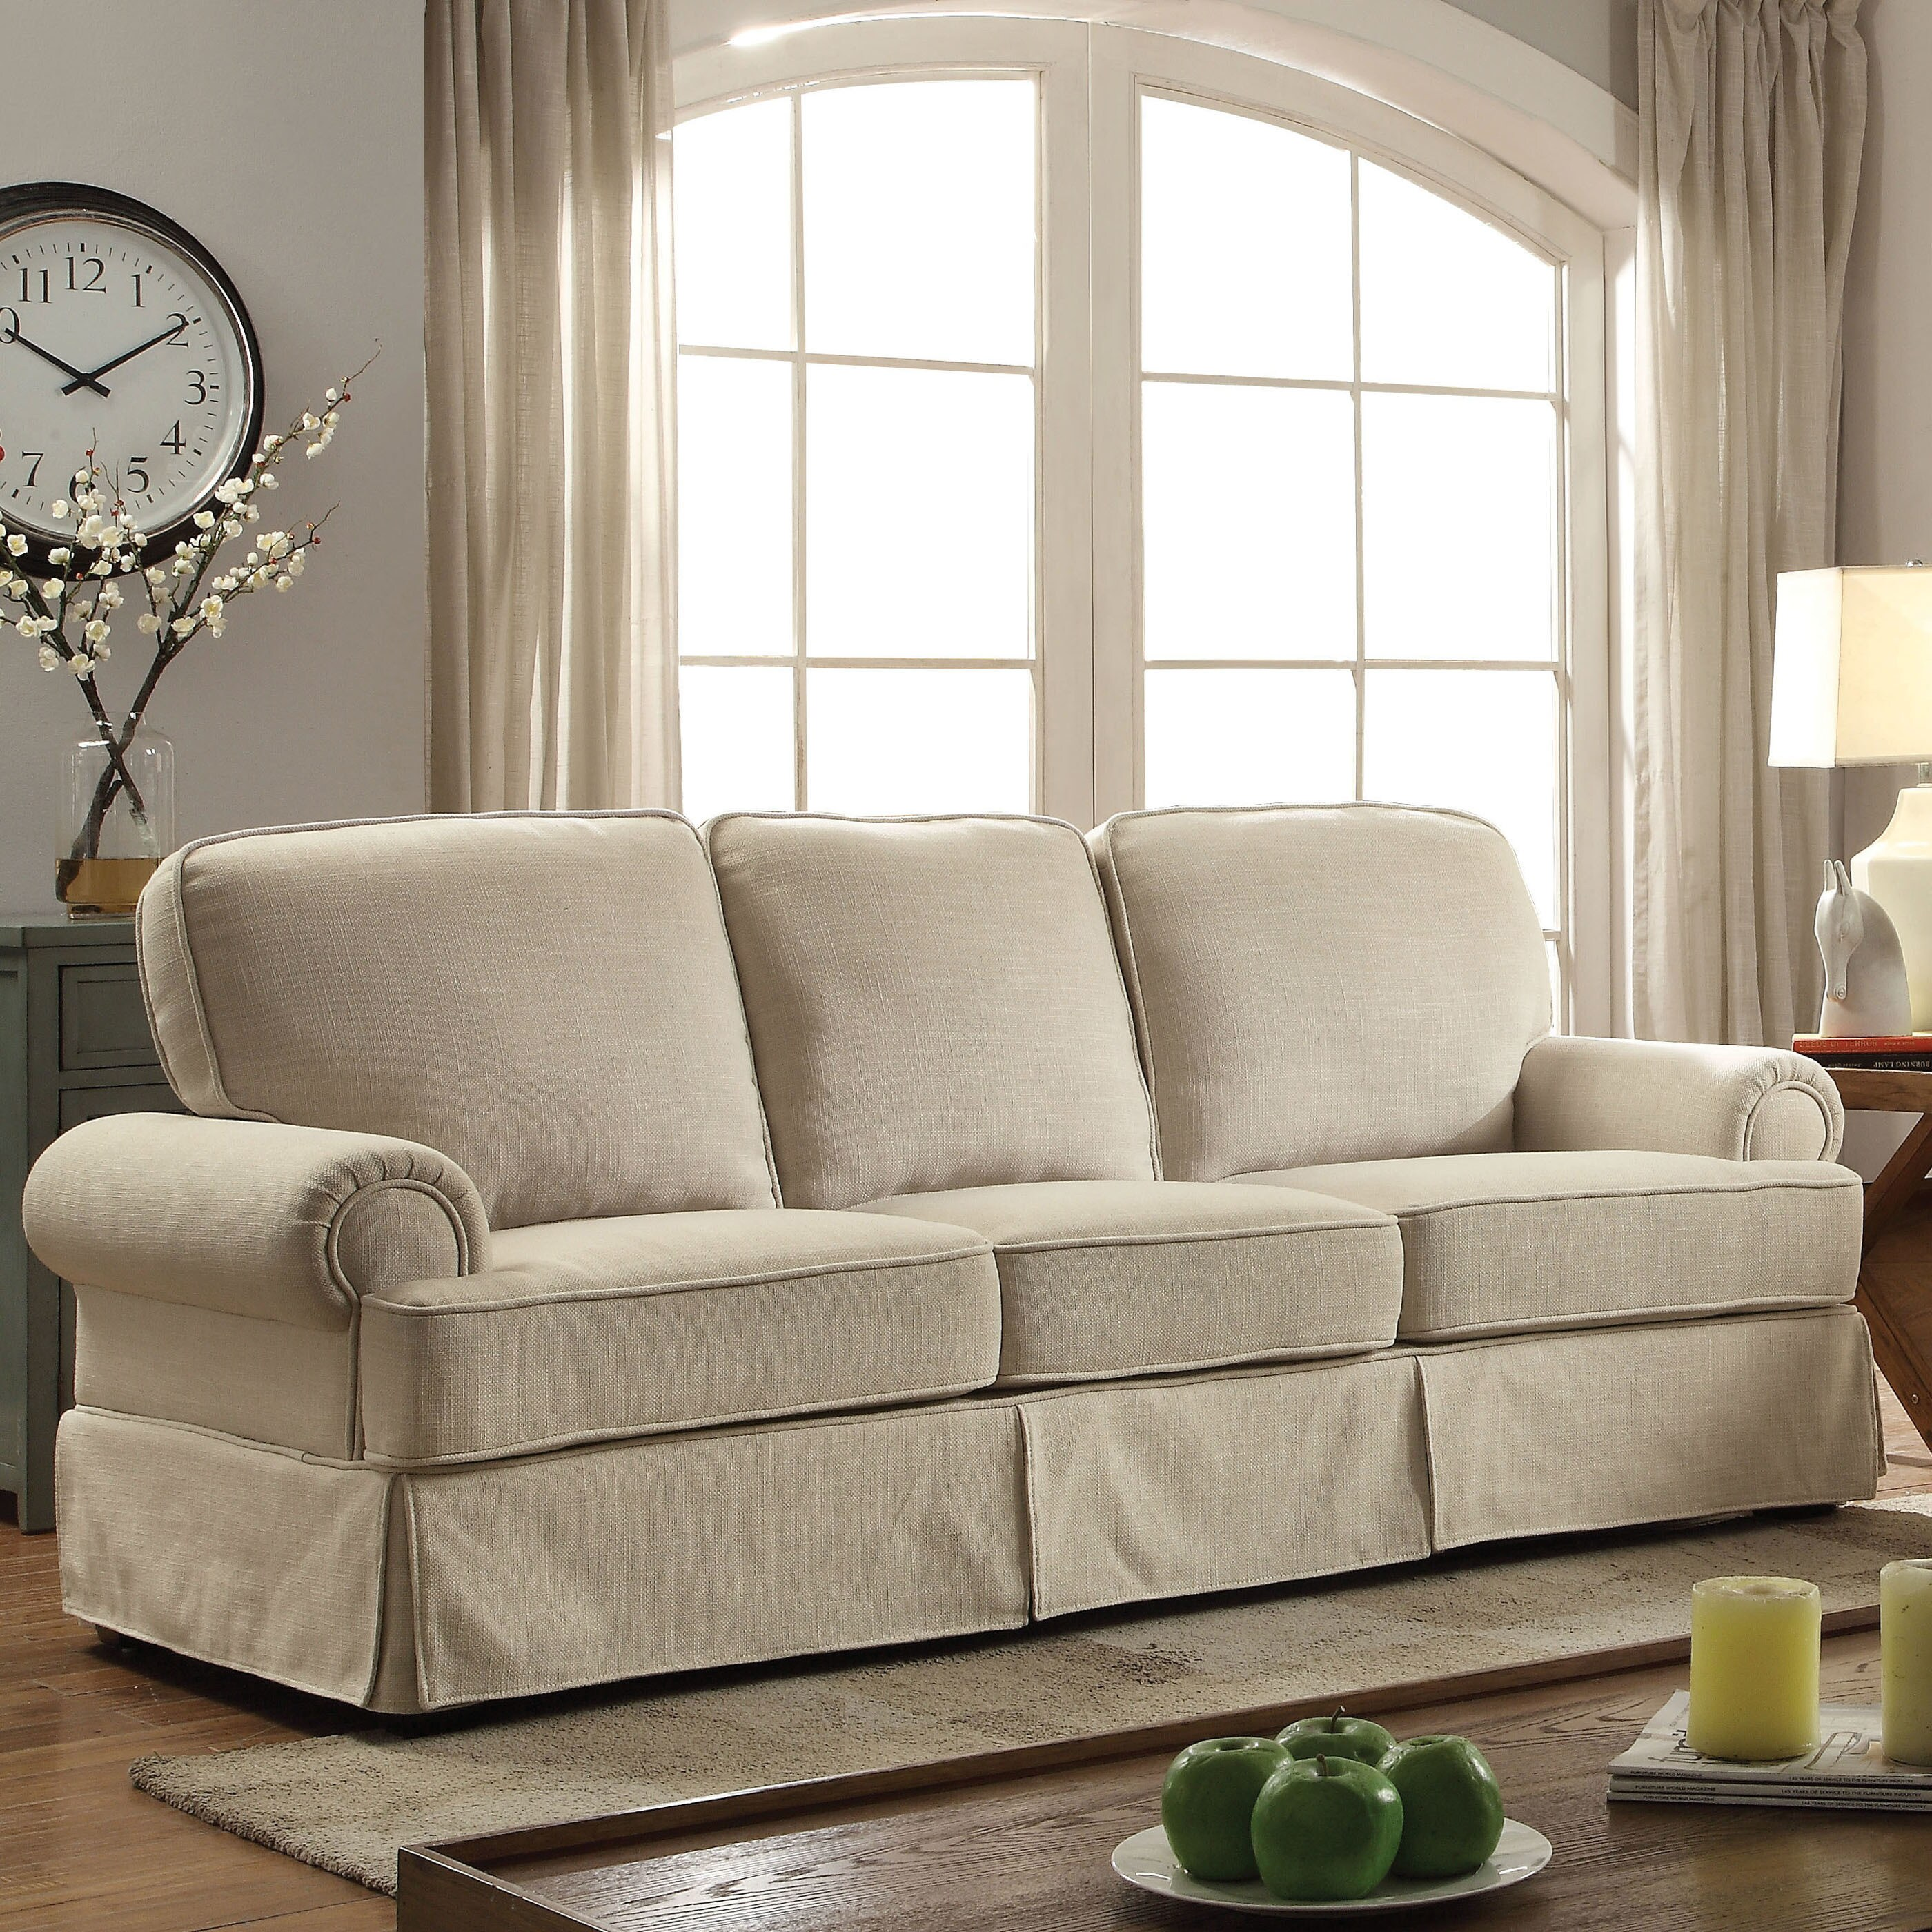 Furniture Of America Eagleton Contemporary Pillow Top Skirted Linen Sofa On Free Shipping Today 19893683